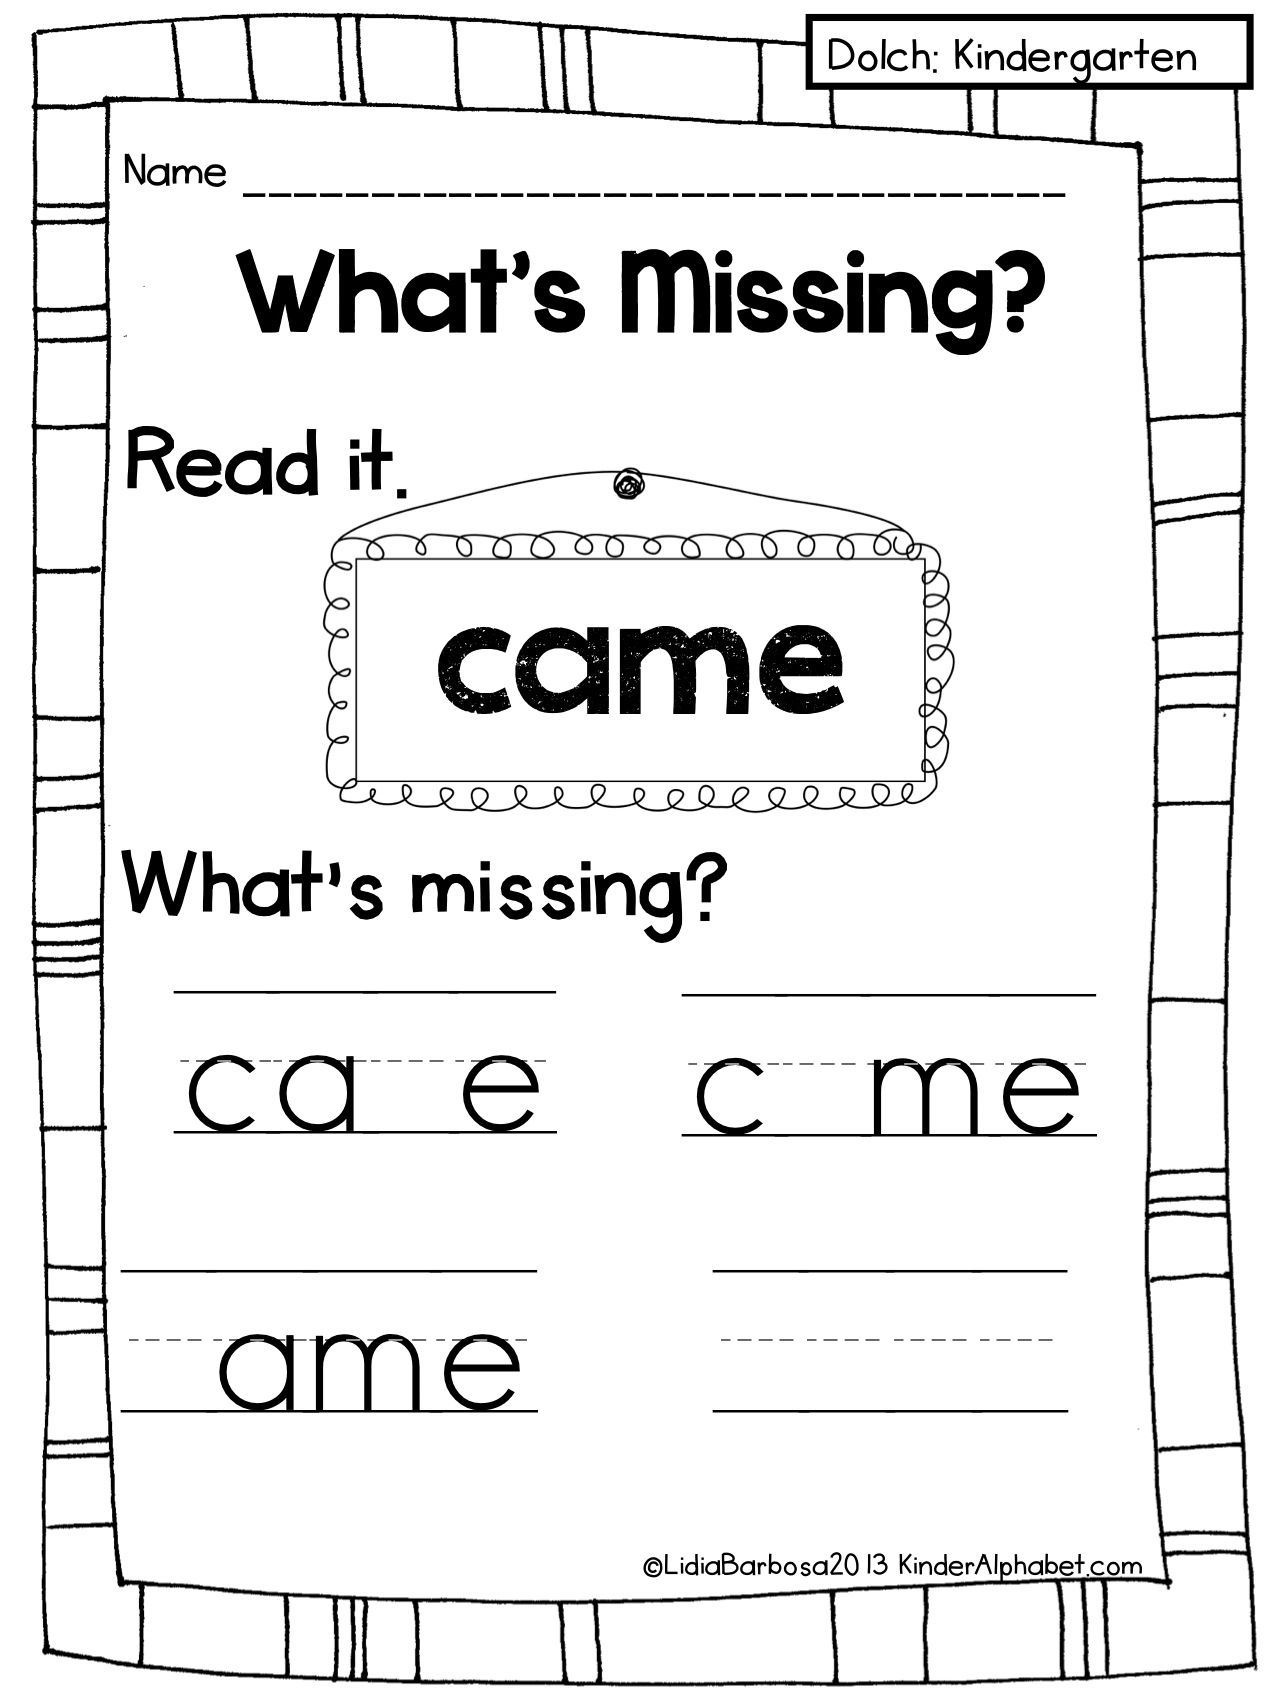 Sight Word Activities to improve visual memory. I want to change it ...